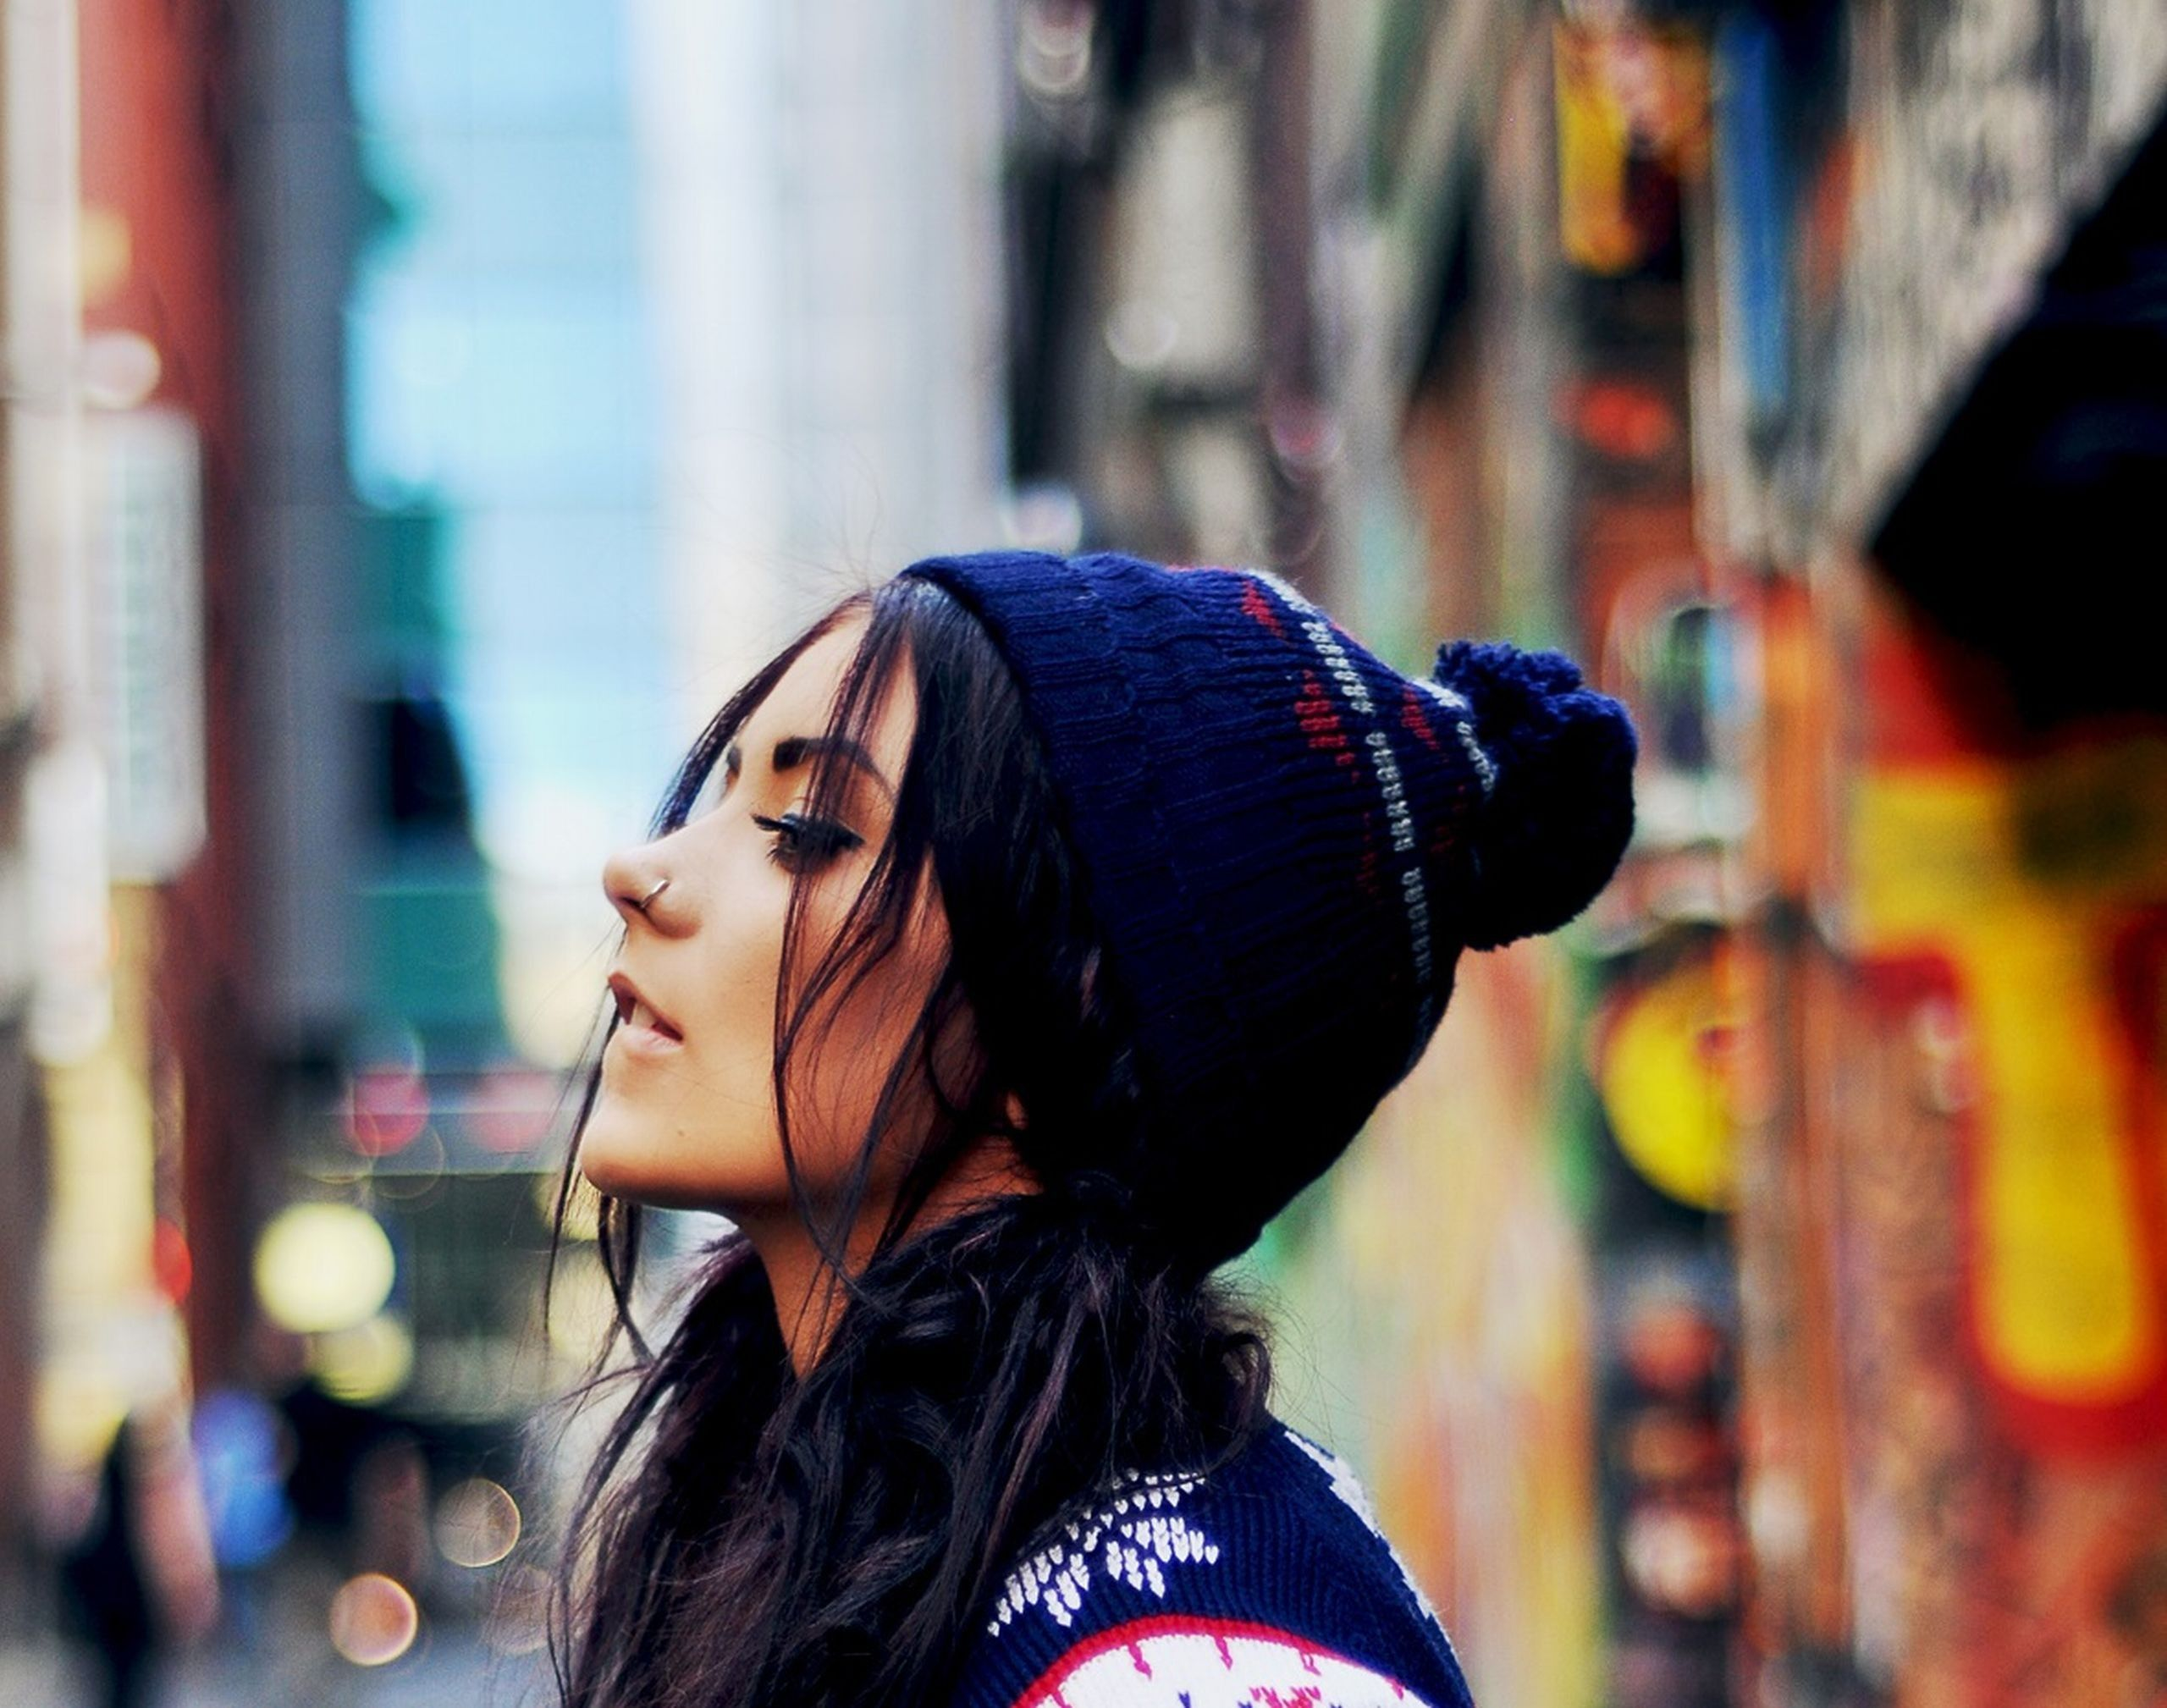 Swag Girl Wallpapers , Top Free Swag Girl Backgrounds